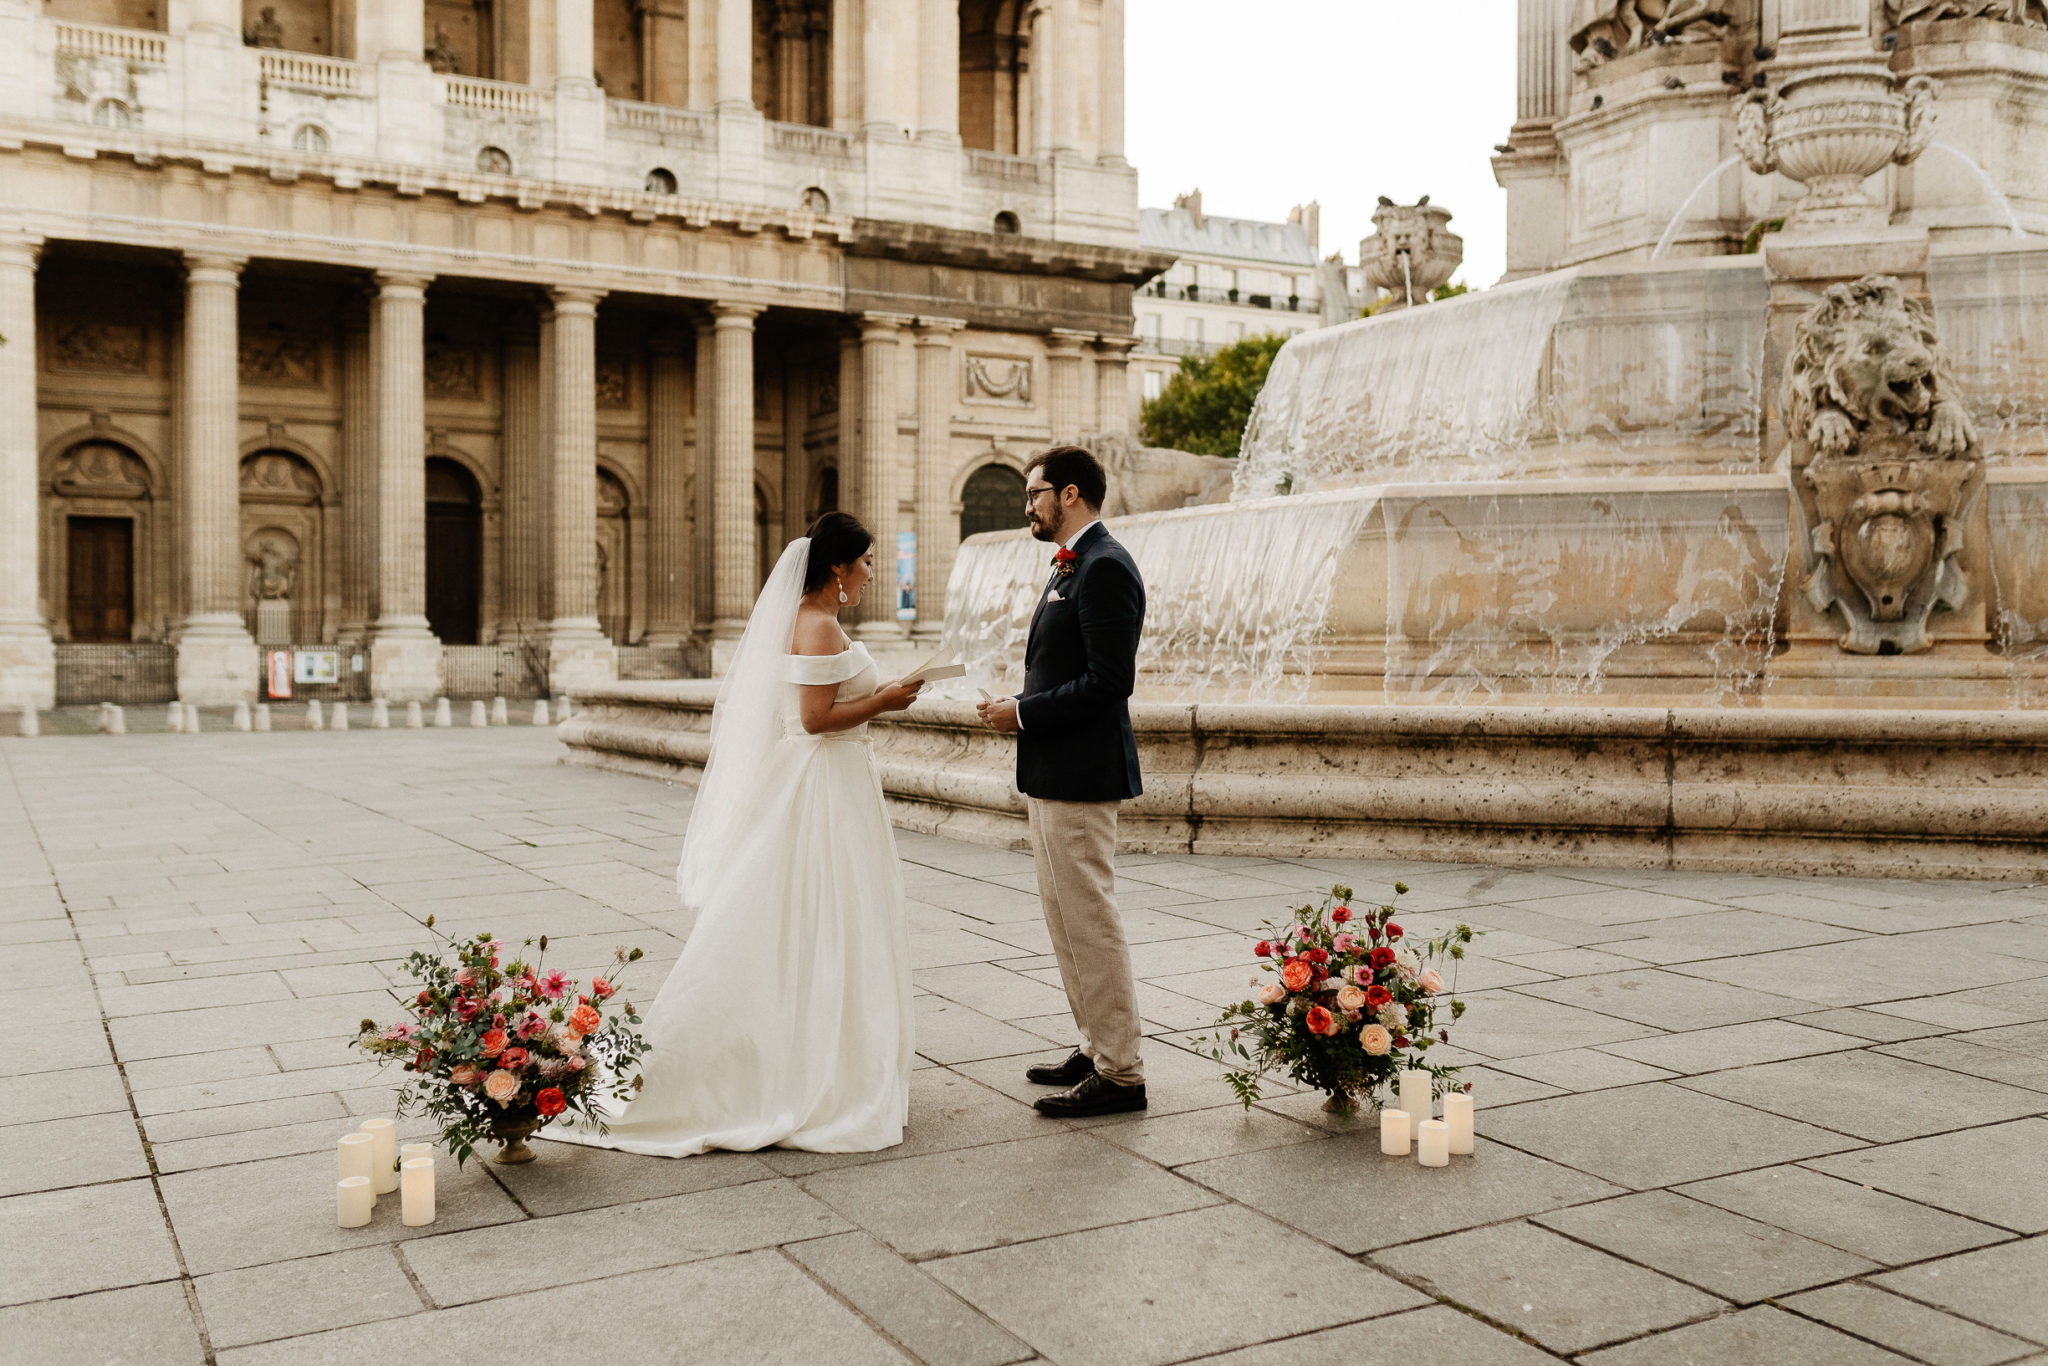 Vows Renewal at Saint Sulpice Fountain in Paris